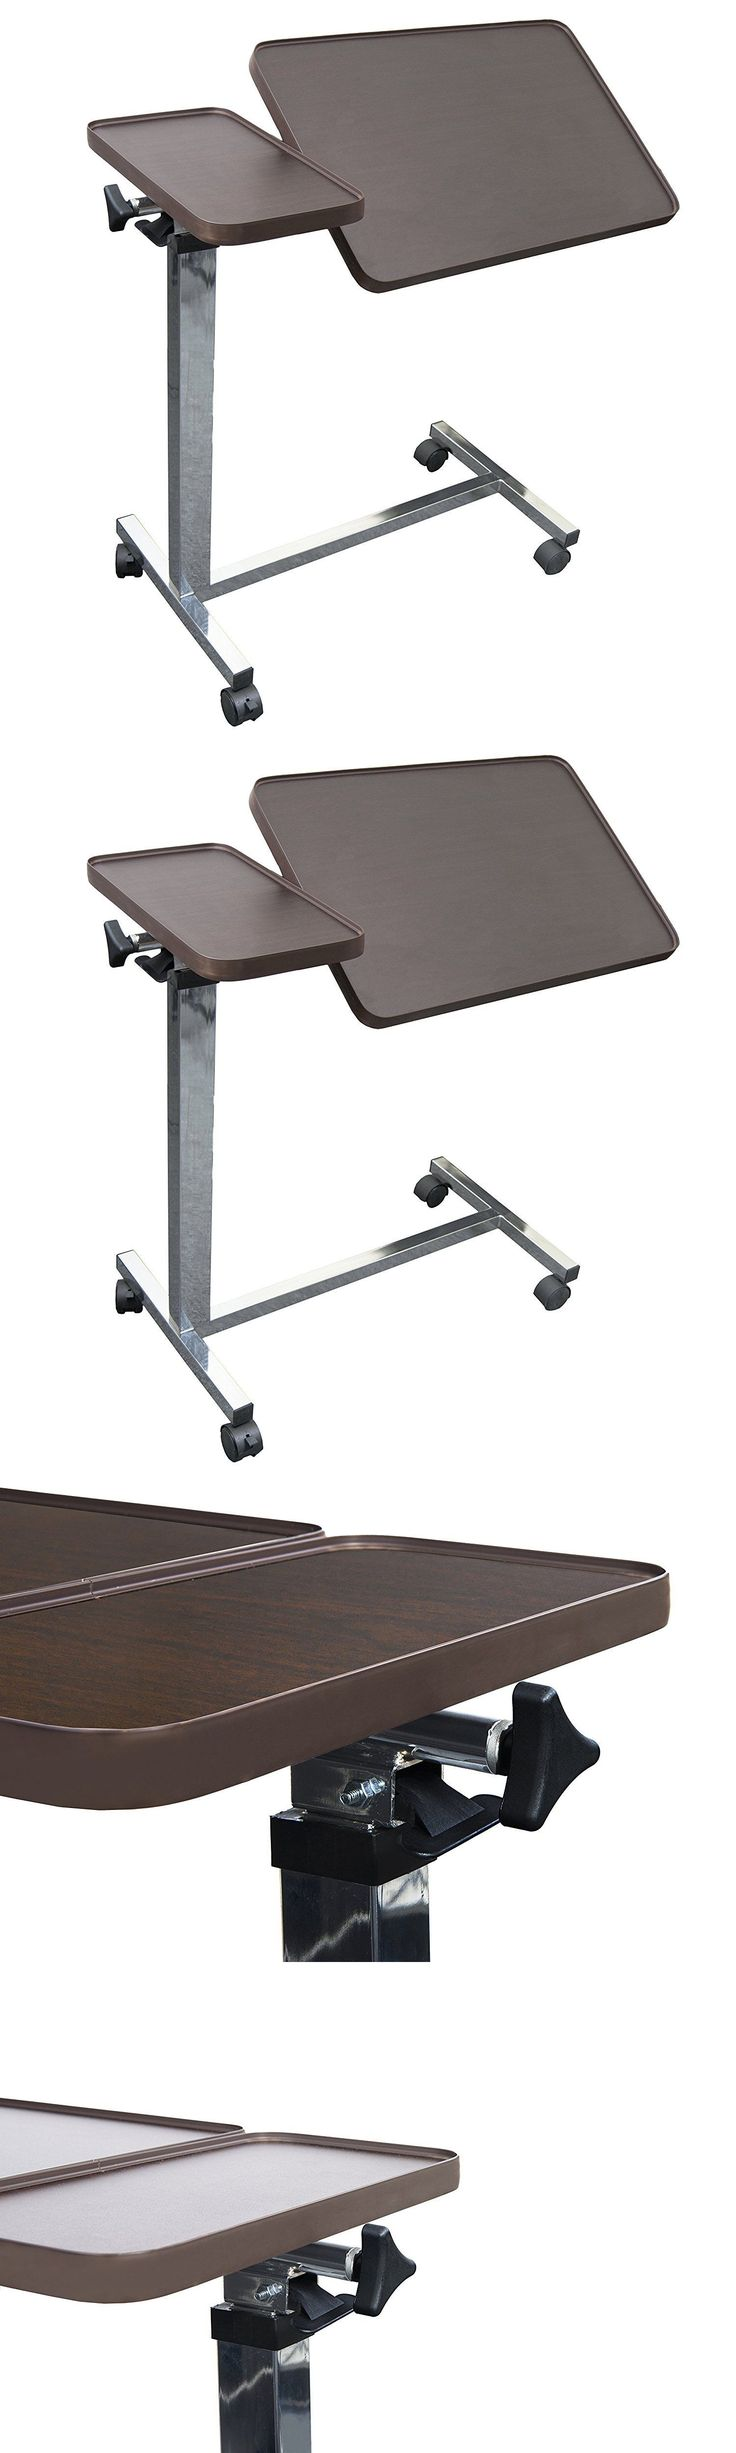 Diy overbed table - Bed And Chair Tables Eva Medical Deluxe Tiltable Overbed Table W One Touch Height